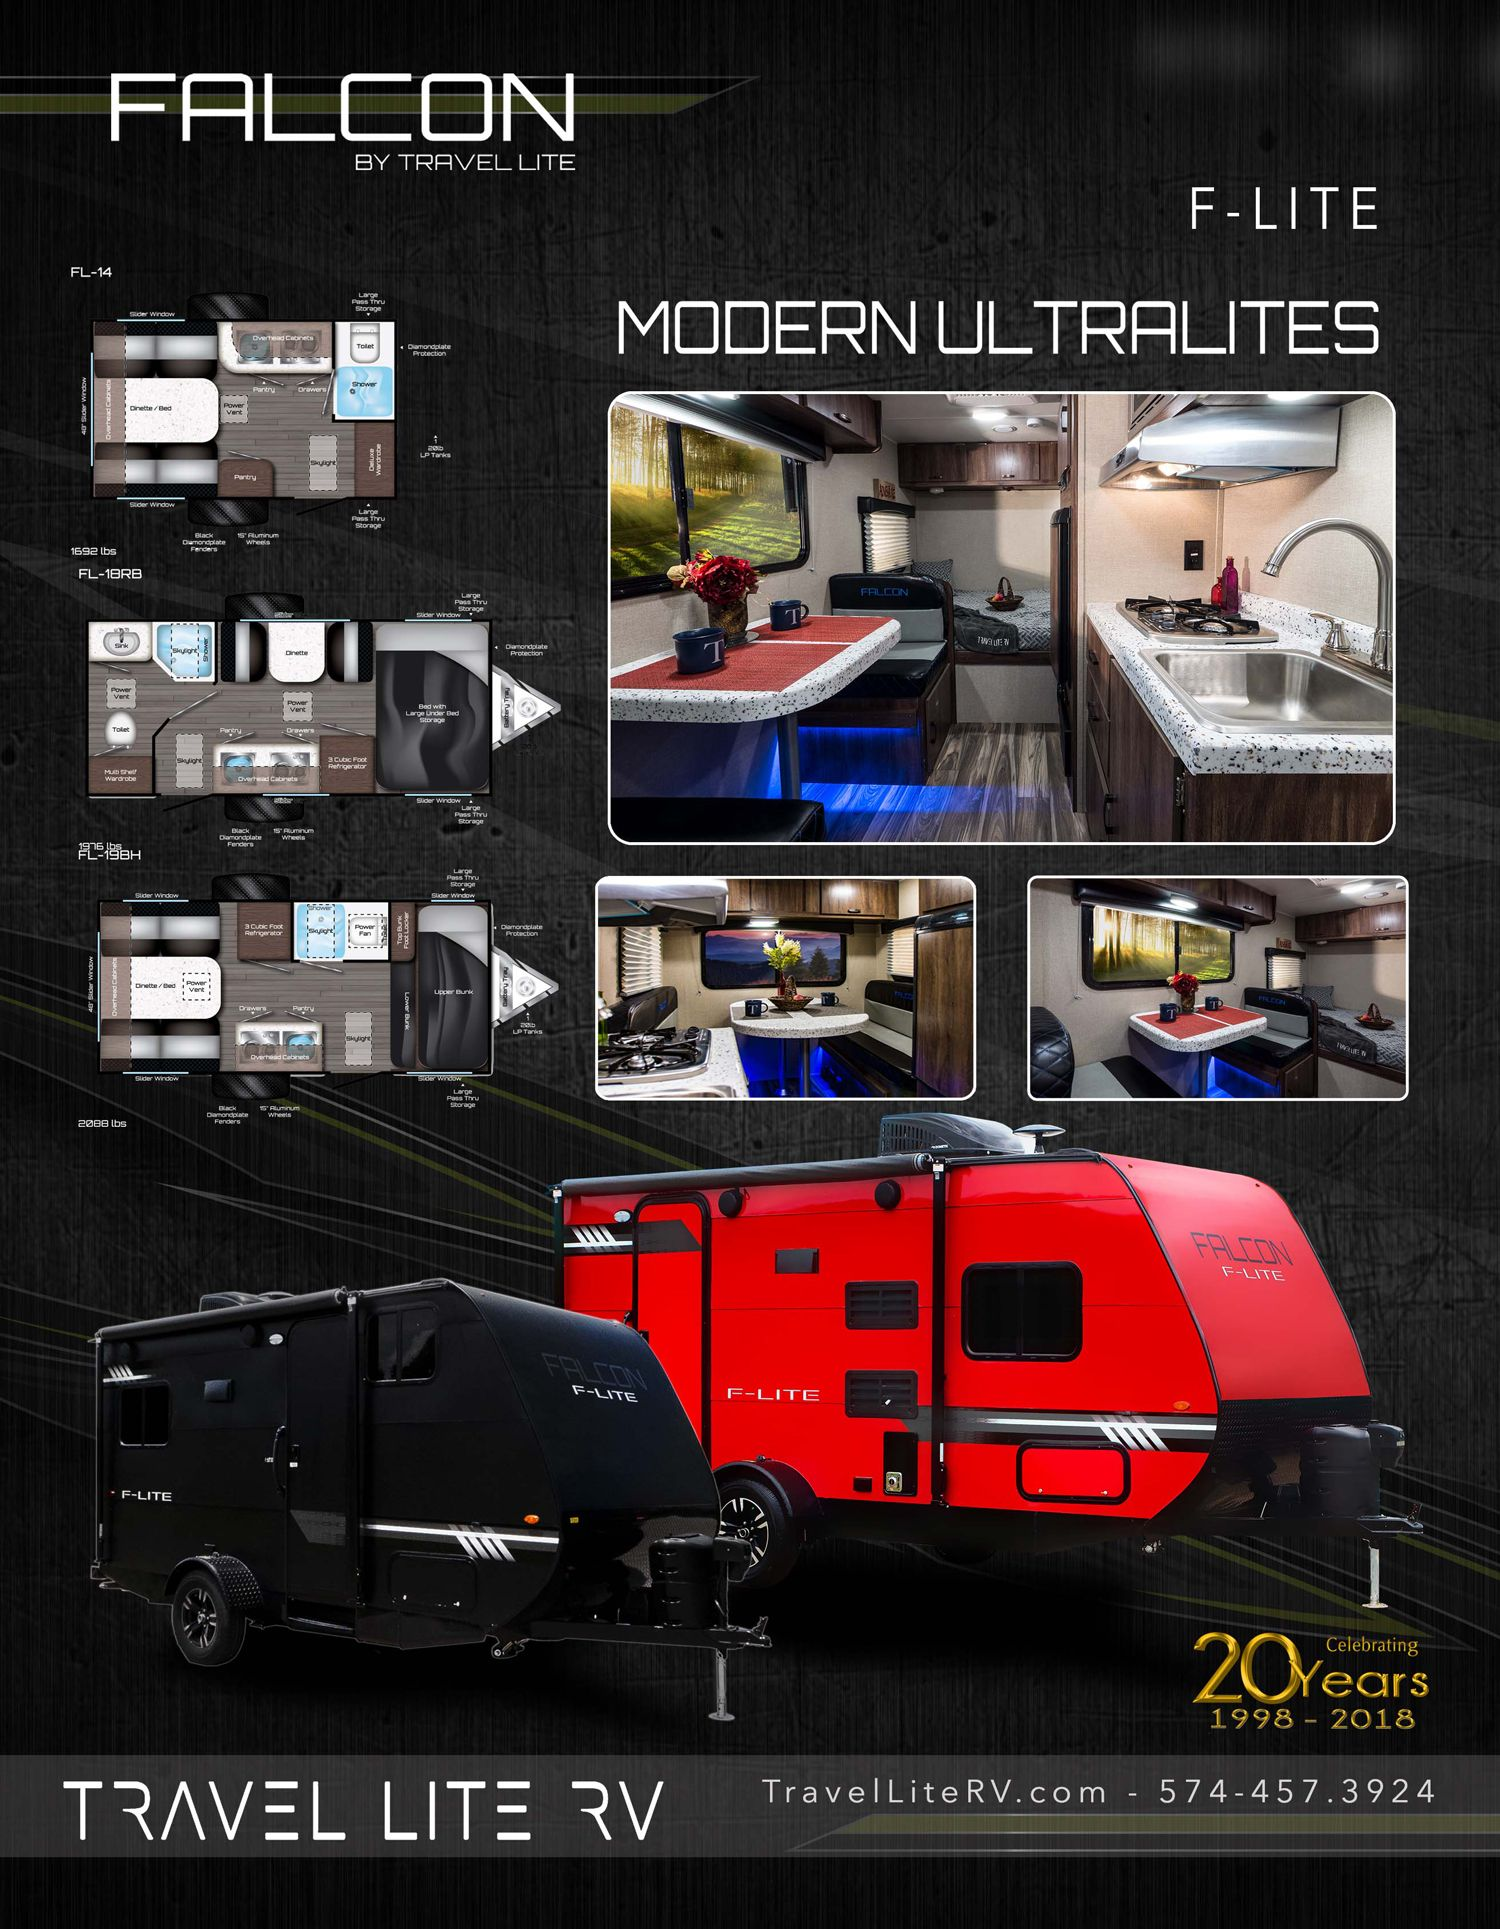 Falcon F Lite Floor Plans 360 Tours And More Travel Lite Rv